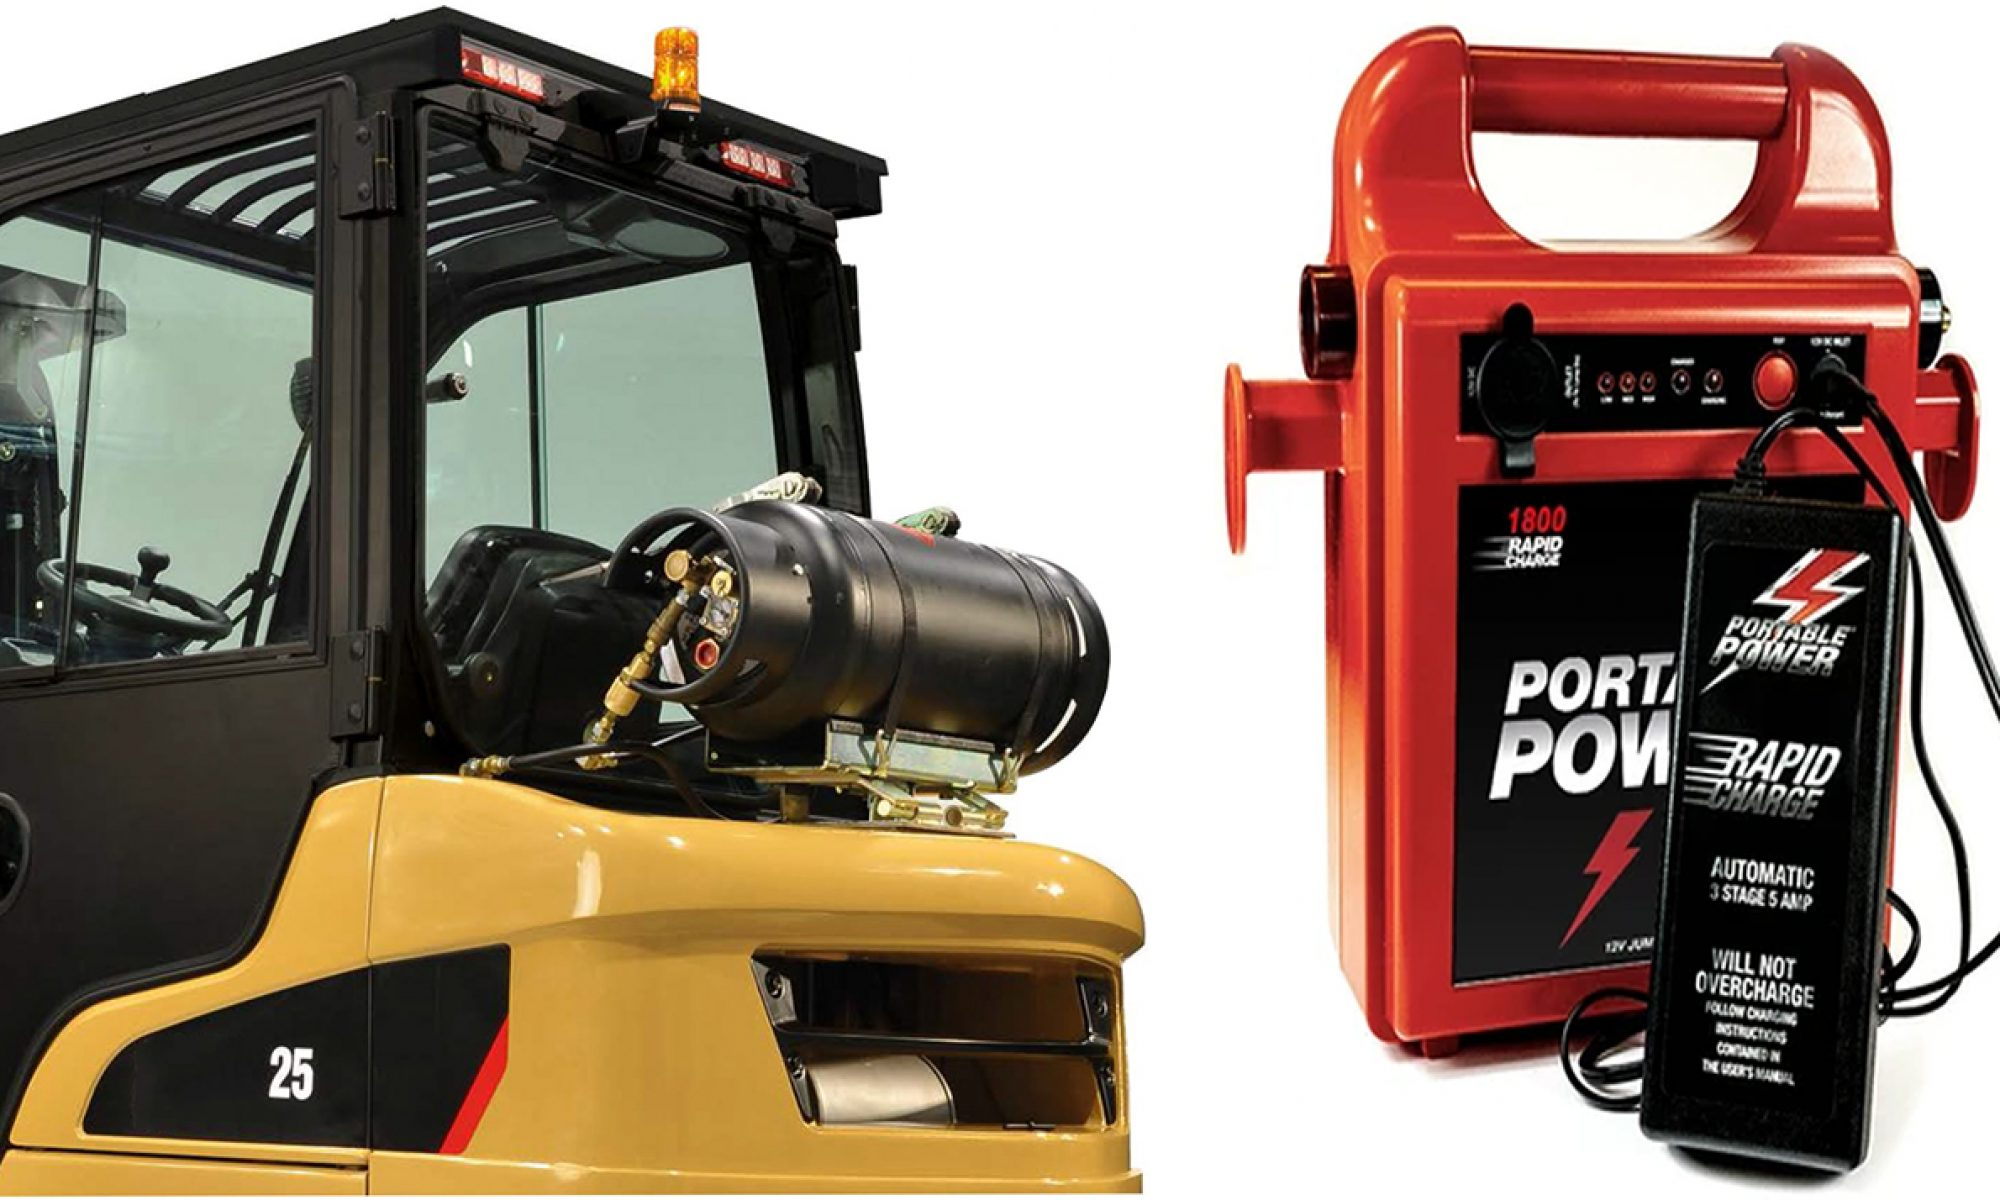 Forklift, Access and Warehouse Equipment Hire. Forklift Tyres. Portable Power Jump Starters & Accessories. 01462 338118